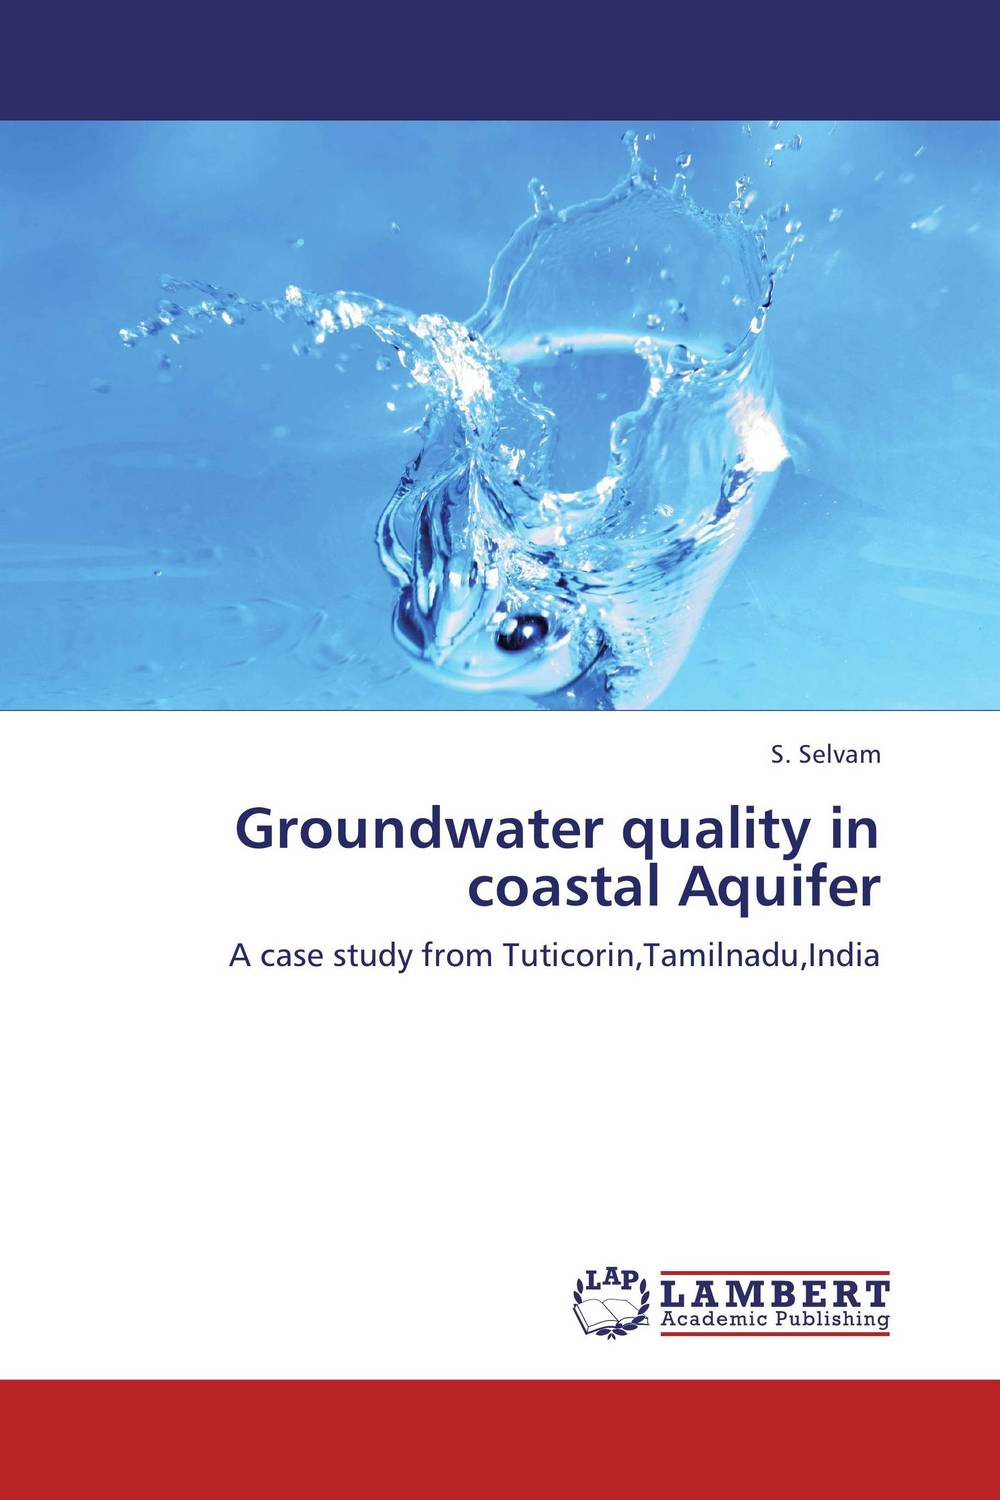 Groundwater quality in coastal Aquifer